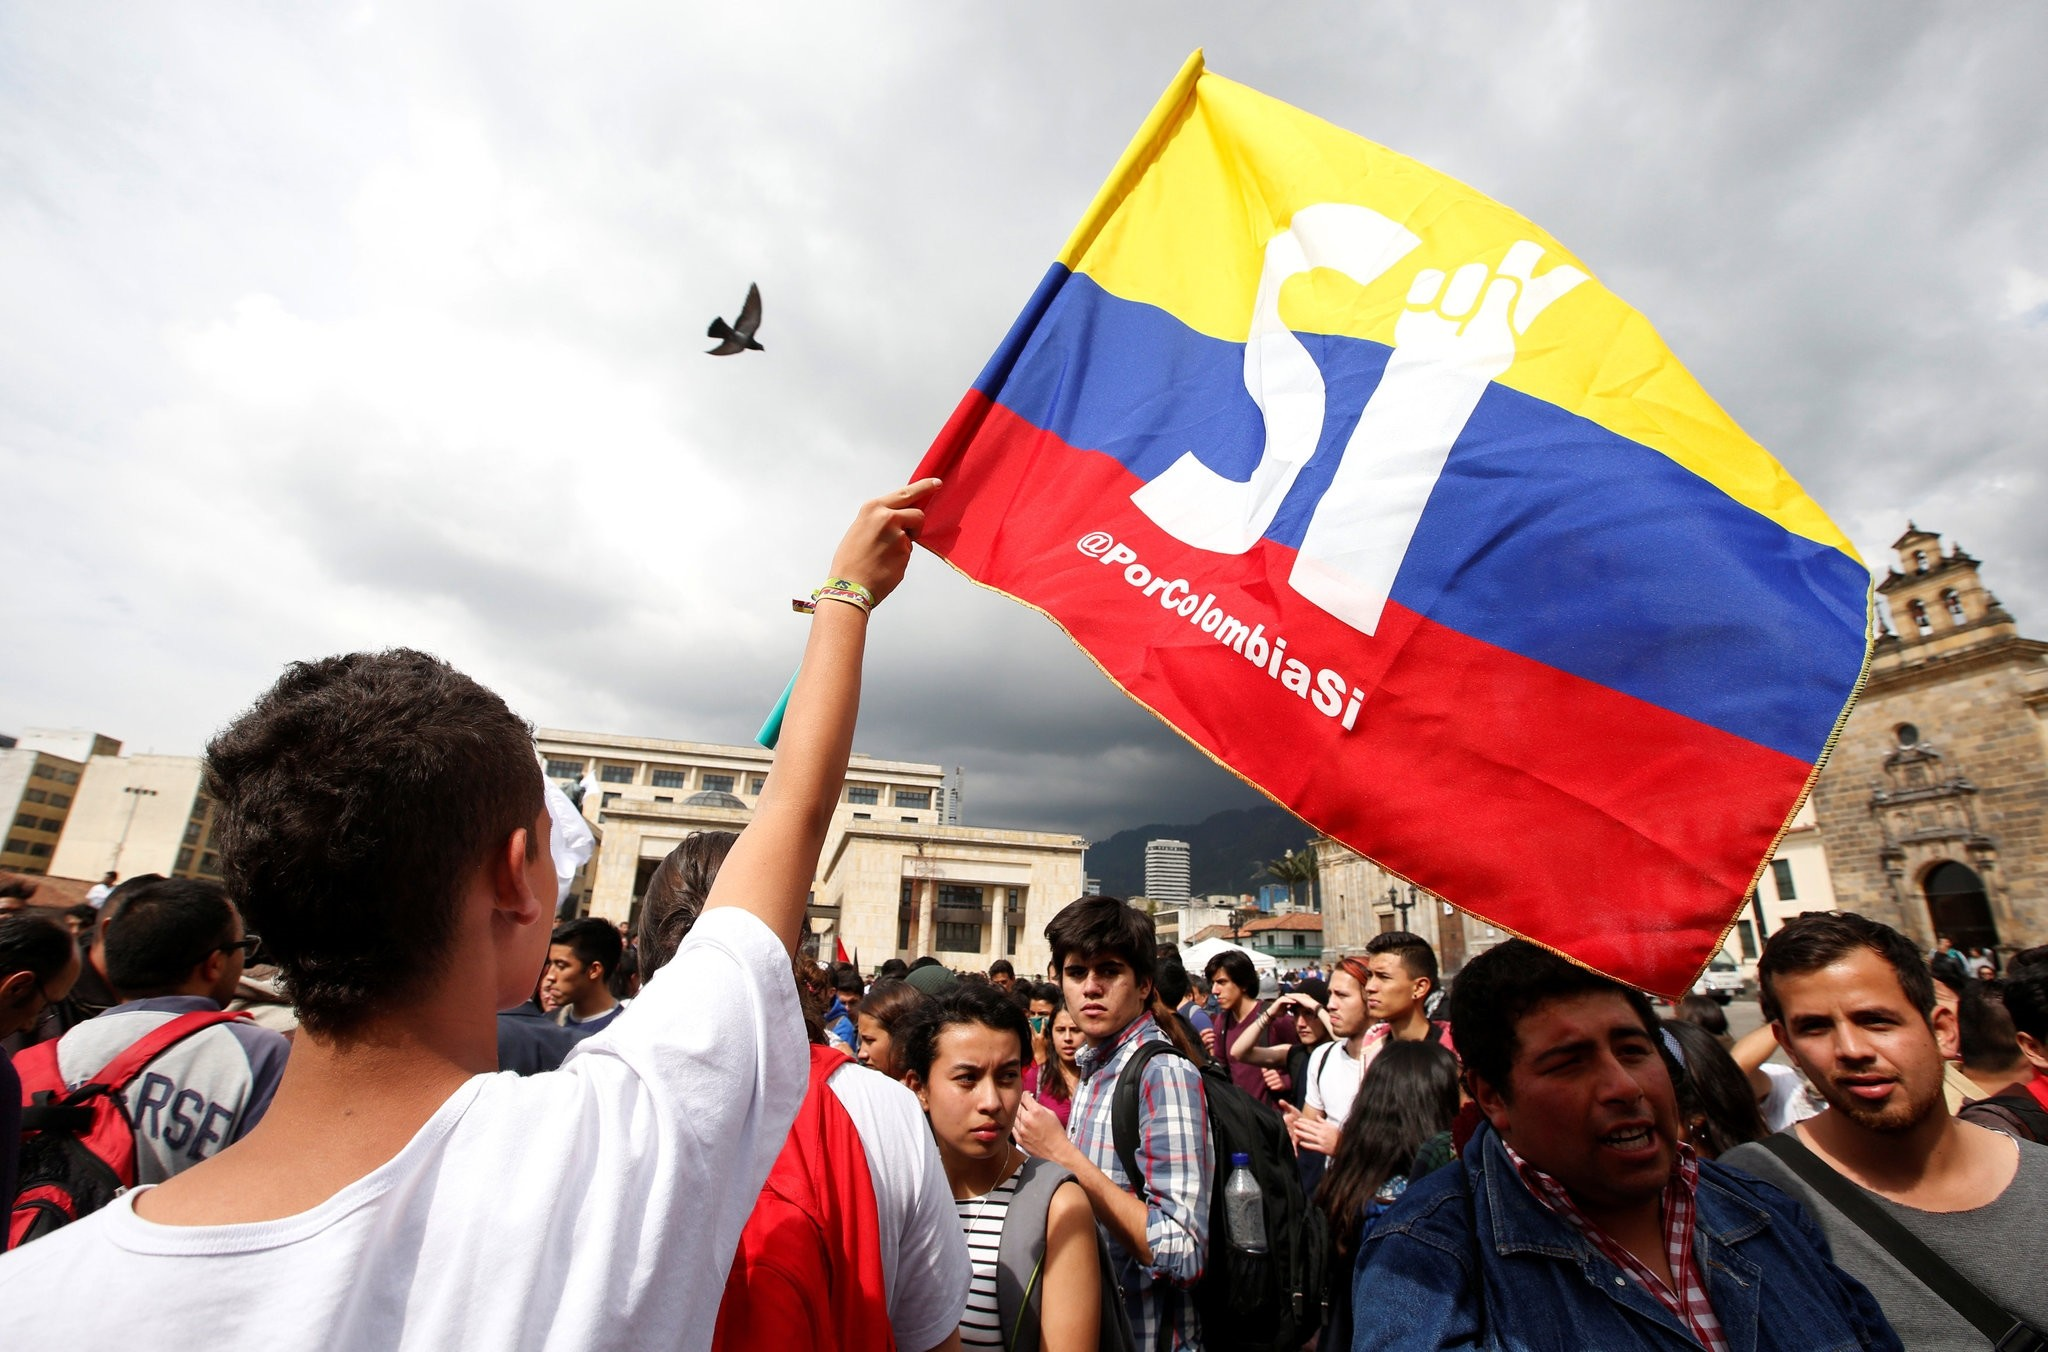 University students and supporters of the peace deal signed between the government and Revolutionary Armed Forces of Colombia (FARC) guerillas display a flag during a rally in front of Congress in Bogota, Colombia Oct. 3, 2016. (REUTERS Photo)